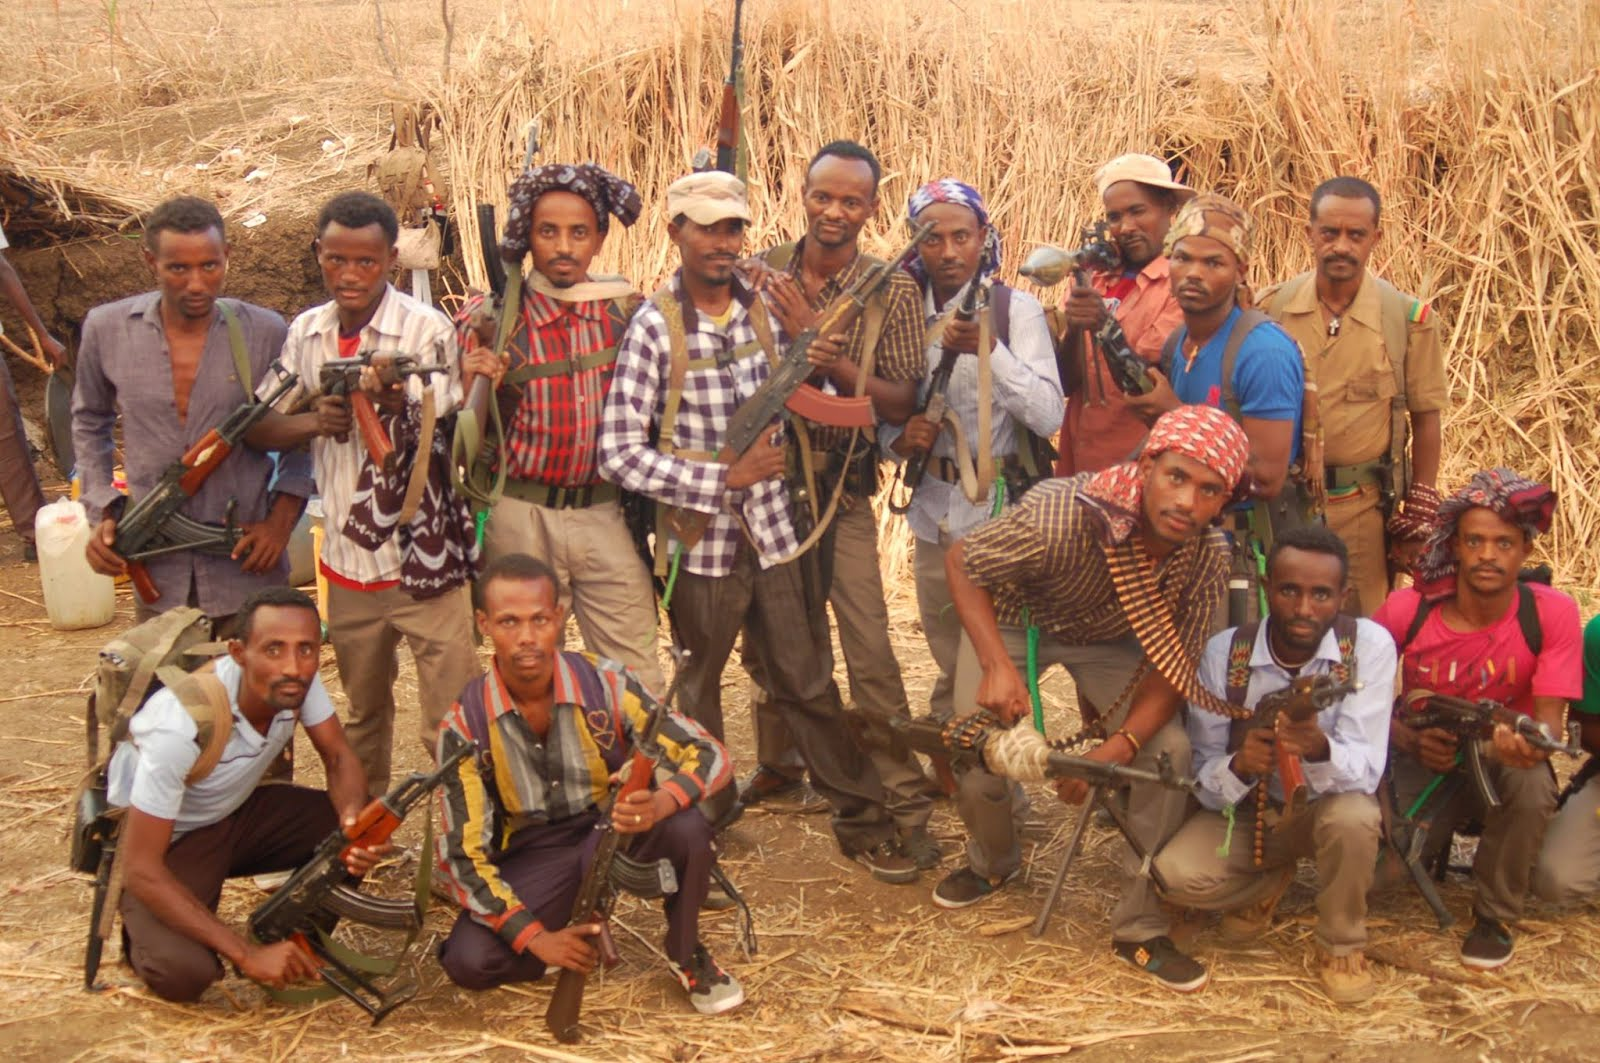 <Ethiopia: Peaceful Protest to Armed Uprising